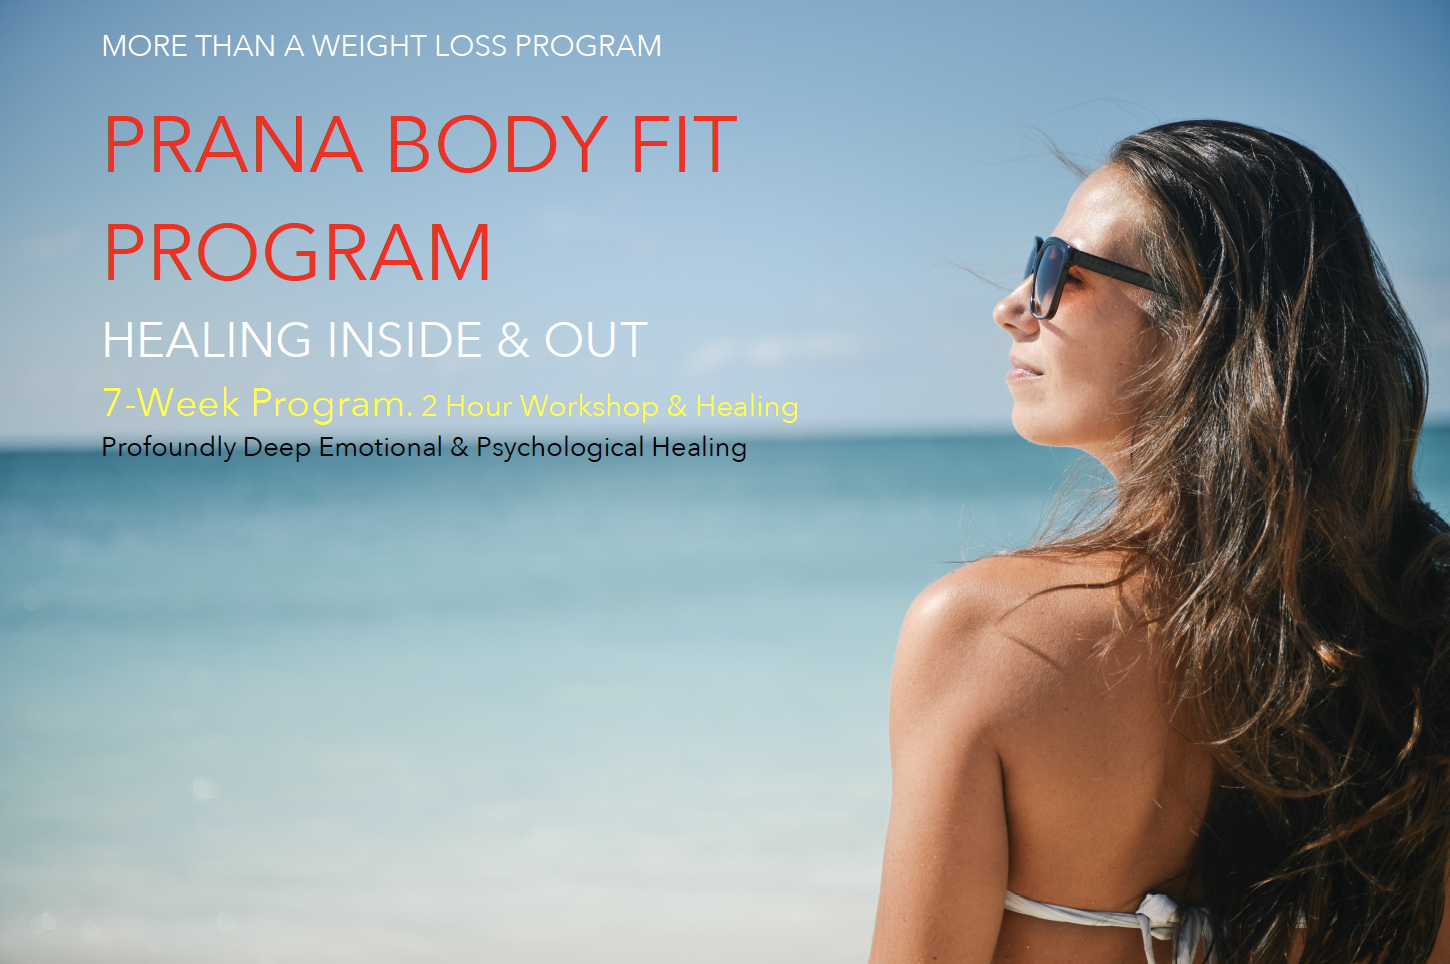 "The Prana Body Fit (PBF)  Program is a beautiful way to understand oneself in a deeper and loving way to bring more joy and healthy way of life, physically, emotionally and mentally. Many have even lost pounds and inches (if that was their goal ^__^)... It's been an amazing journey and is a highly demanded Program. Hope you can join us! Go to  www.ATLPranicHealing.com/pranabodyfit  to join!  Catch the 1st Early Bird is April 21st. Please feel free to share this with anyone who may be interested.    7-Session Workshop from May 7 - Jun 18, Tuesdays 7pm-9pm.  In-person & online sessions available.  Weekly Schedule   Tuesdays 7pm - 9pm from May 7 - Jun 18    Week 1 - May 7    Week 2 - May 14    Week 3 - May 21    Week 4 - May 28    Week 5 - June 4    Week 6 - June 11    Week 7 - June 18       A Beautiful Offering:    Lectures  - Learning about self and energetic tools to help improve wellbeing  "" Work""shop  - Diving deeper into the self to see areas of strengths, patterns, past trauma, positive experiences to help translate and re-wire patterns   Guided Healing  - Facilitating healings of physical, emotional and mental areas that may have been blocking oneself for a healthier lifestyle.   Group Support  - Bringing a circle of support for/from the group as it leverages exponential ways for self-growth.  We also offer individual Pranic Body Sculpting sessions, if you purchase the  Golden PBF Bundle.  Pranic Body Sculpting helps increase vitality and healing into our skin, muscles and help remove stress and depression energies in the body. It is an amazing way to help shed pounds or inches. See below for pricing.  Judy Yi, Founder of Atlanta Pranic Healing Center, facilitates the group workshop. In the past, each PBF series has been such sacred space for healing, where people practice deeper honoring of self and others. Many have shed pounds and inches. Many have built strength and confidence. Many have experienced deeper connection to self and others. And most of all, many have shed negative emotions, stress, and deep-seeded patterns that hindered for great success and wellbeing.  A portion of the funds help support the center's rent and other programs.   Special Prices     $399 - Golden PBF Bundle - PBF + 3 (1hr) Pranic Body Sculpting - BIGGEST SAVINGS!!!   $200 - Special Rate After May 1- Regular Rate, PBF Only  $175 - Xtra Special - Early Bird By May 1 - PBF Only -  BIG SAVINGS!    $150 - Super Special - Early Bird by April 21, PBF Only - BIGGER SAVINGS!!   $40 - Per Session - Regular, Must Commit to All 7 Sessions  $35 – Per Session Auto Payments – Regular, Must Commit to All 7 Sessions  Go to  www.ATLPranicHealing.com/pranabodyfit  to join!  Hope to see you at Prana Body Fit!"